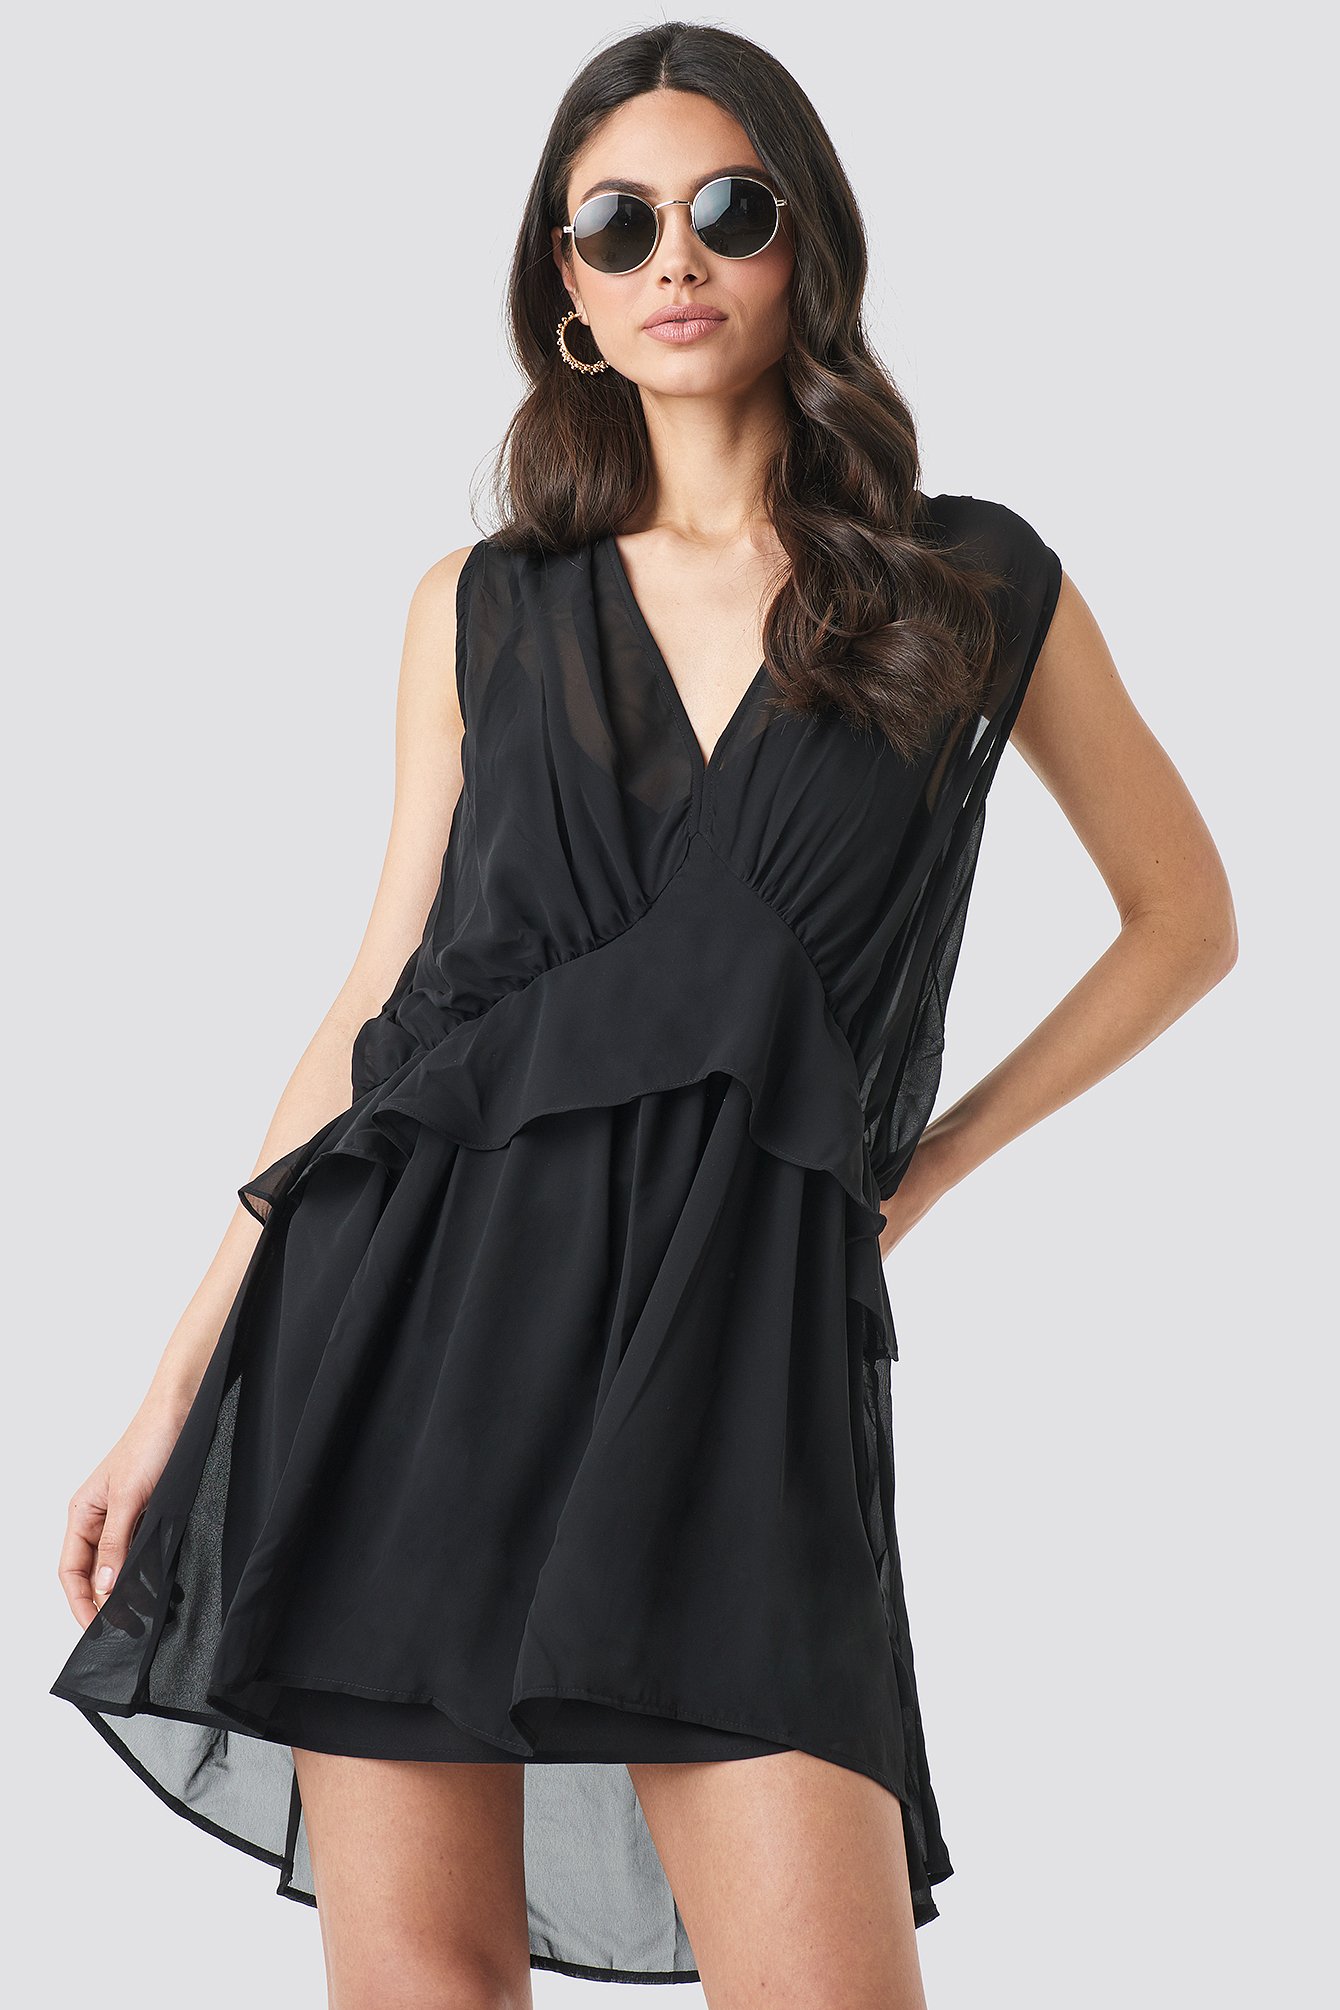 Black Short Chiffon Dress